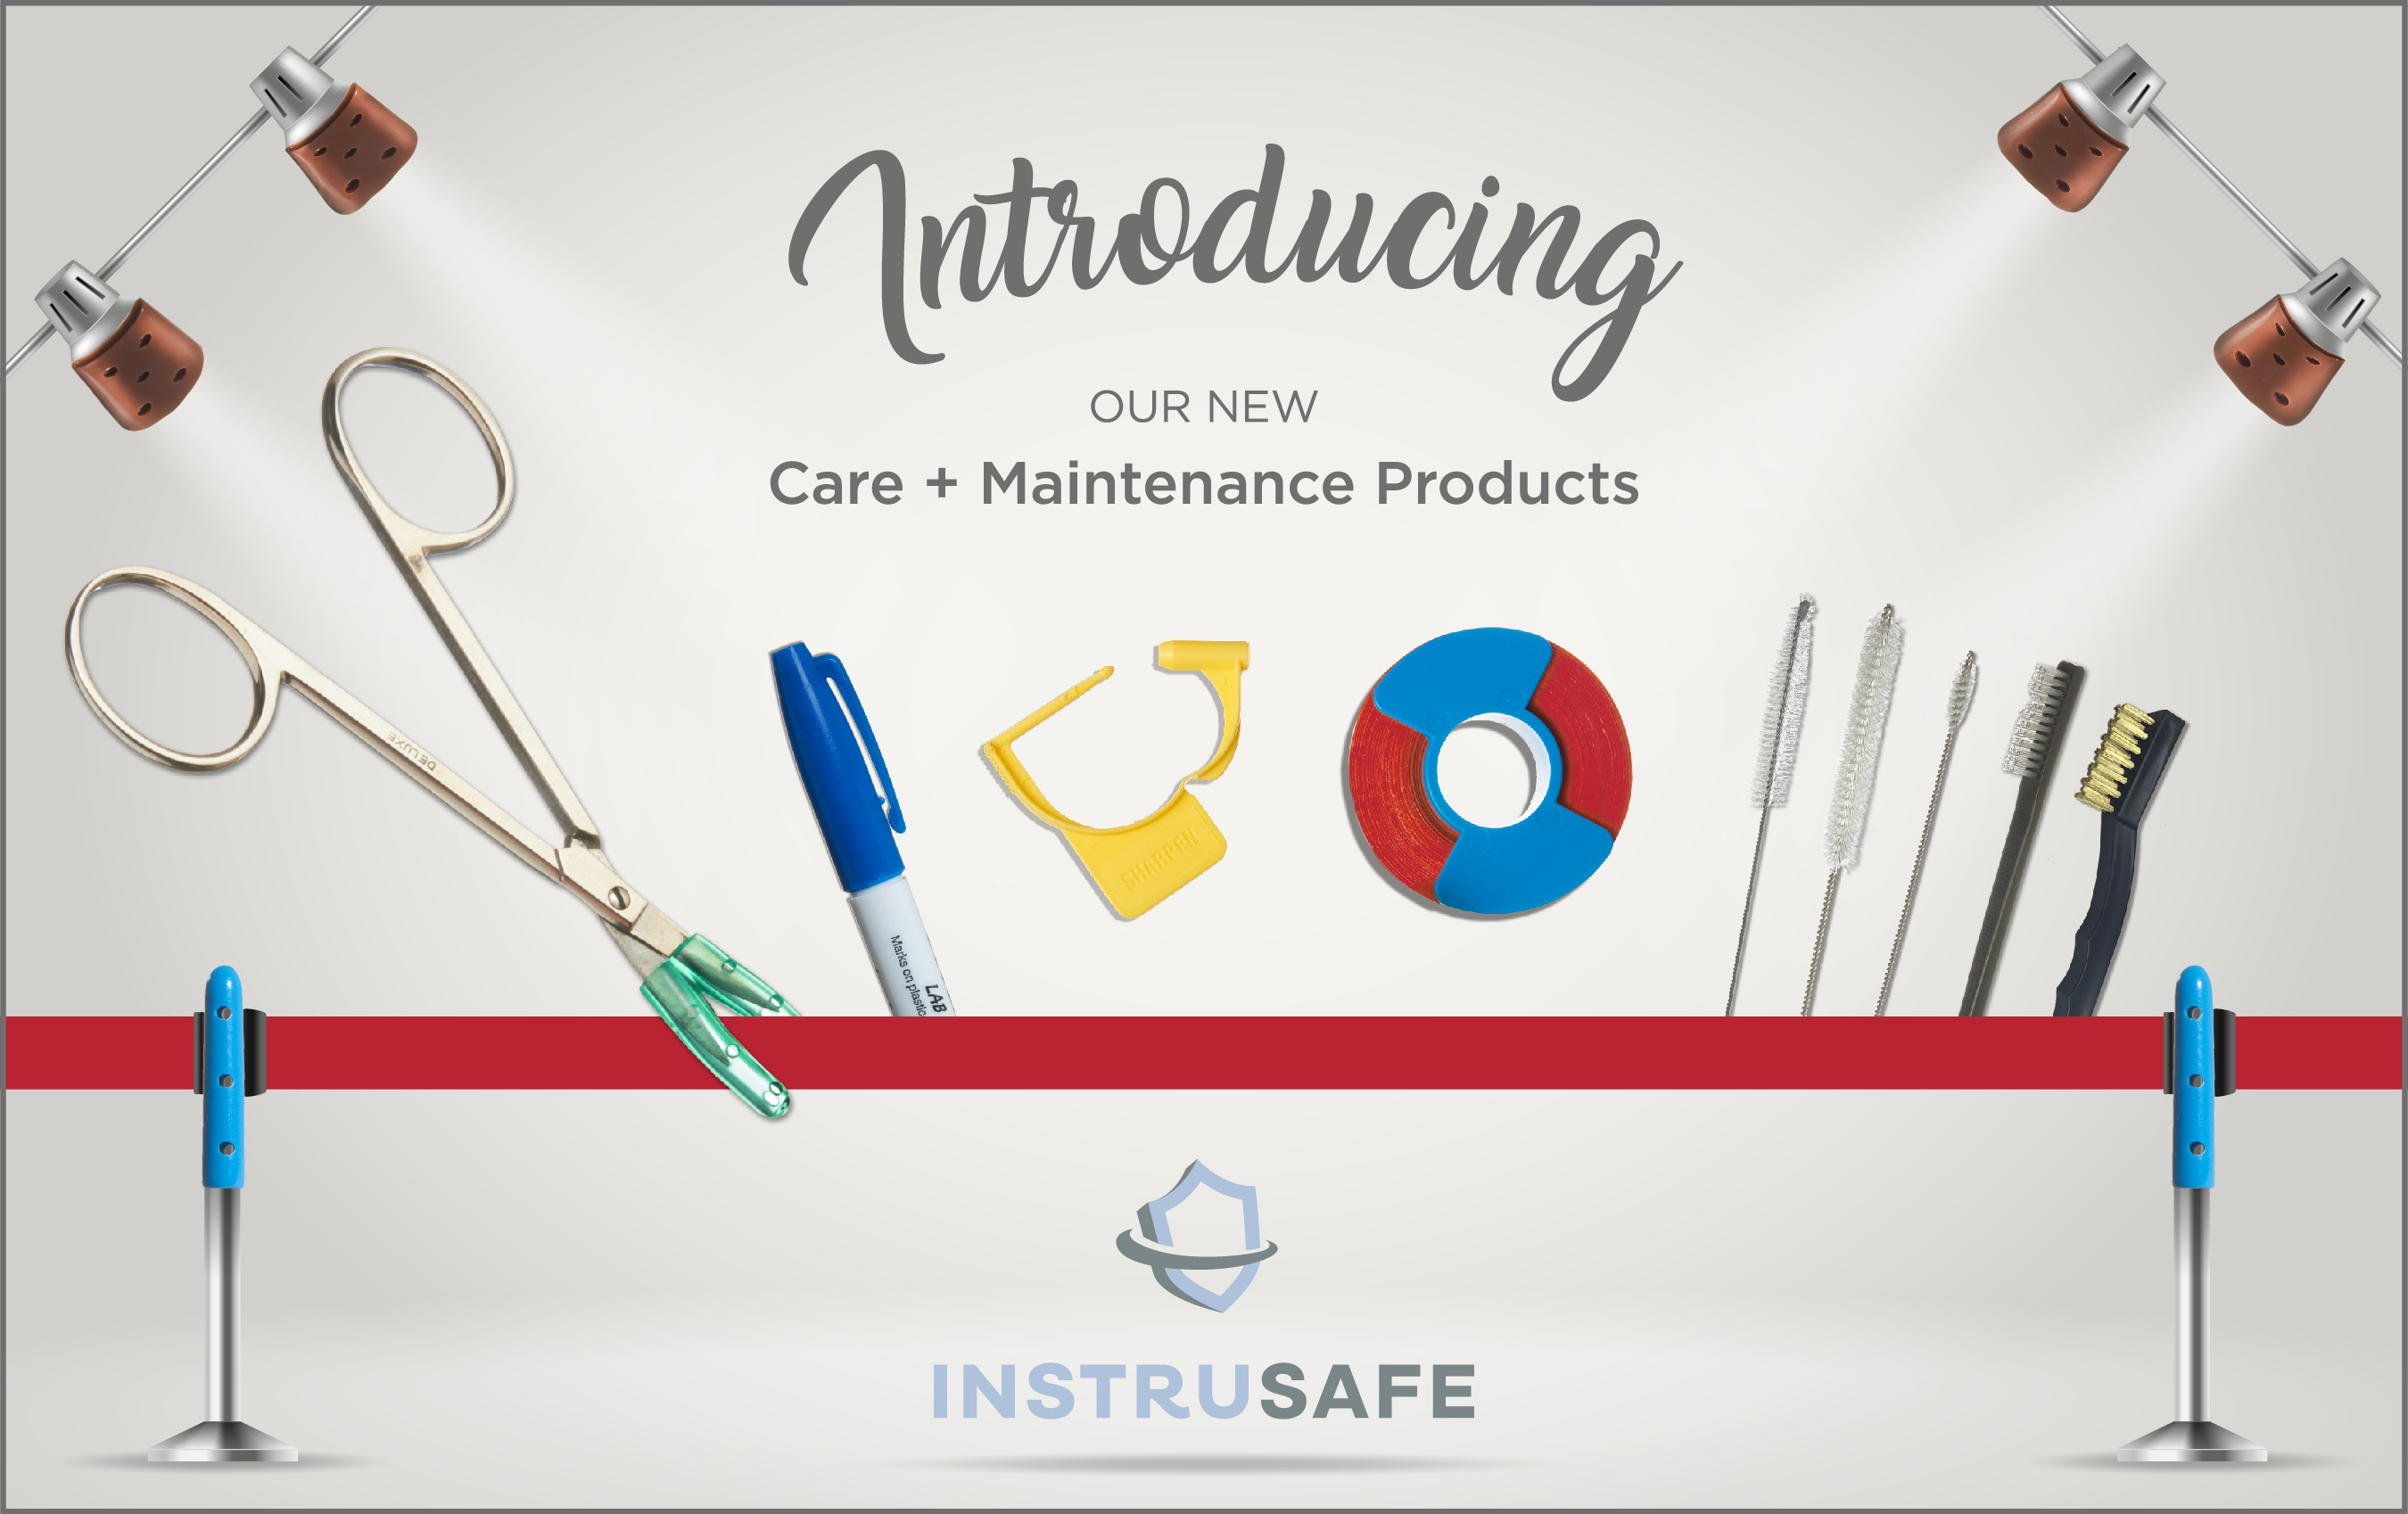 Summit Medical Inc. expands InstruSafe portfolio with new InstruSafe Care + Maintenance Products